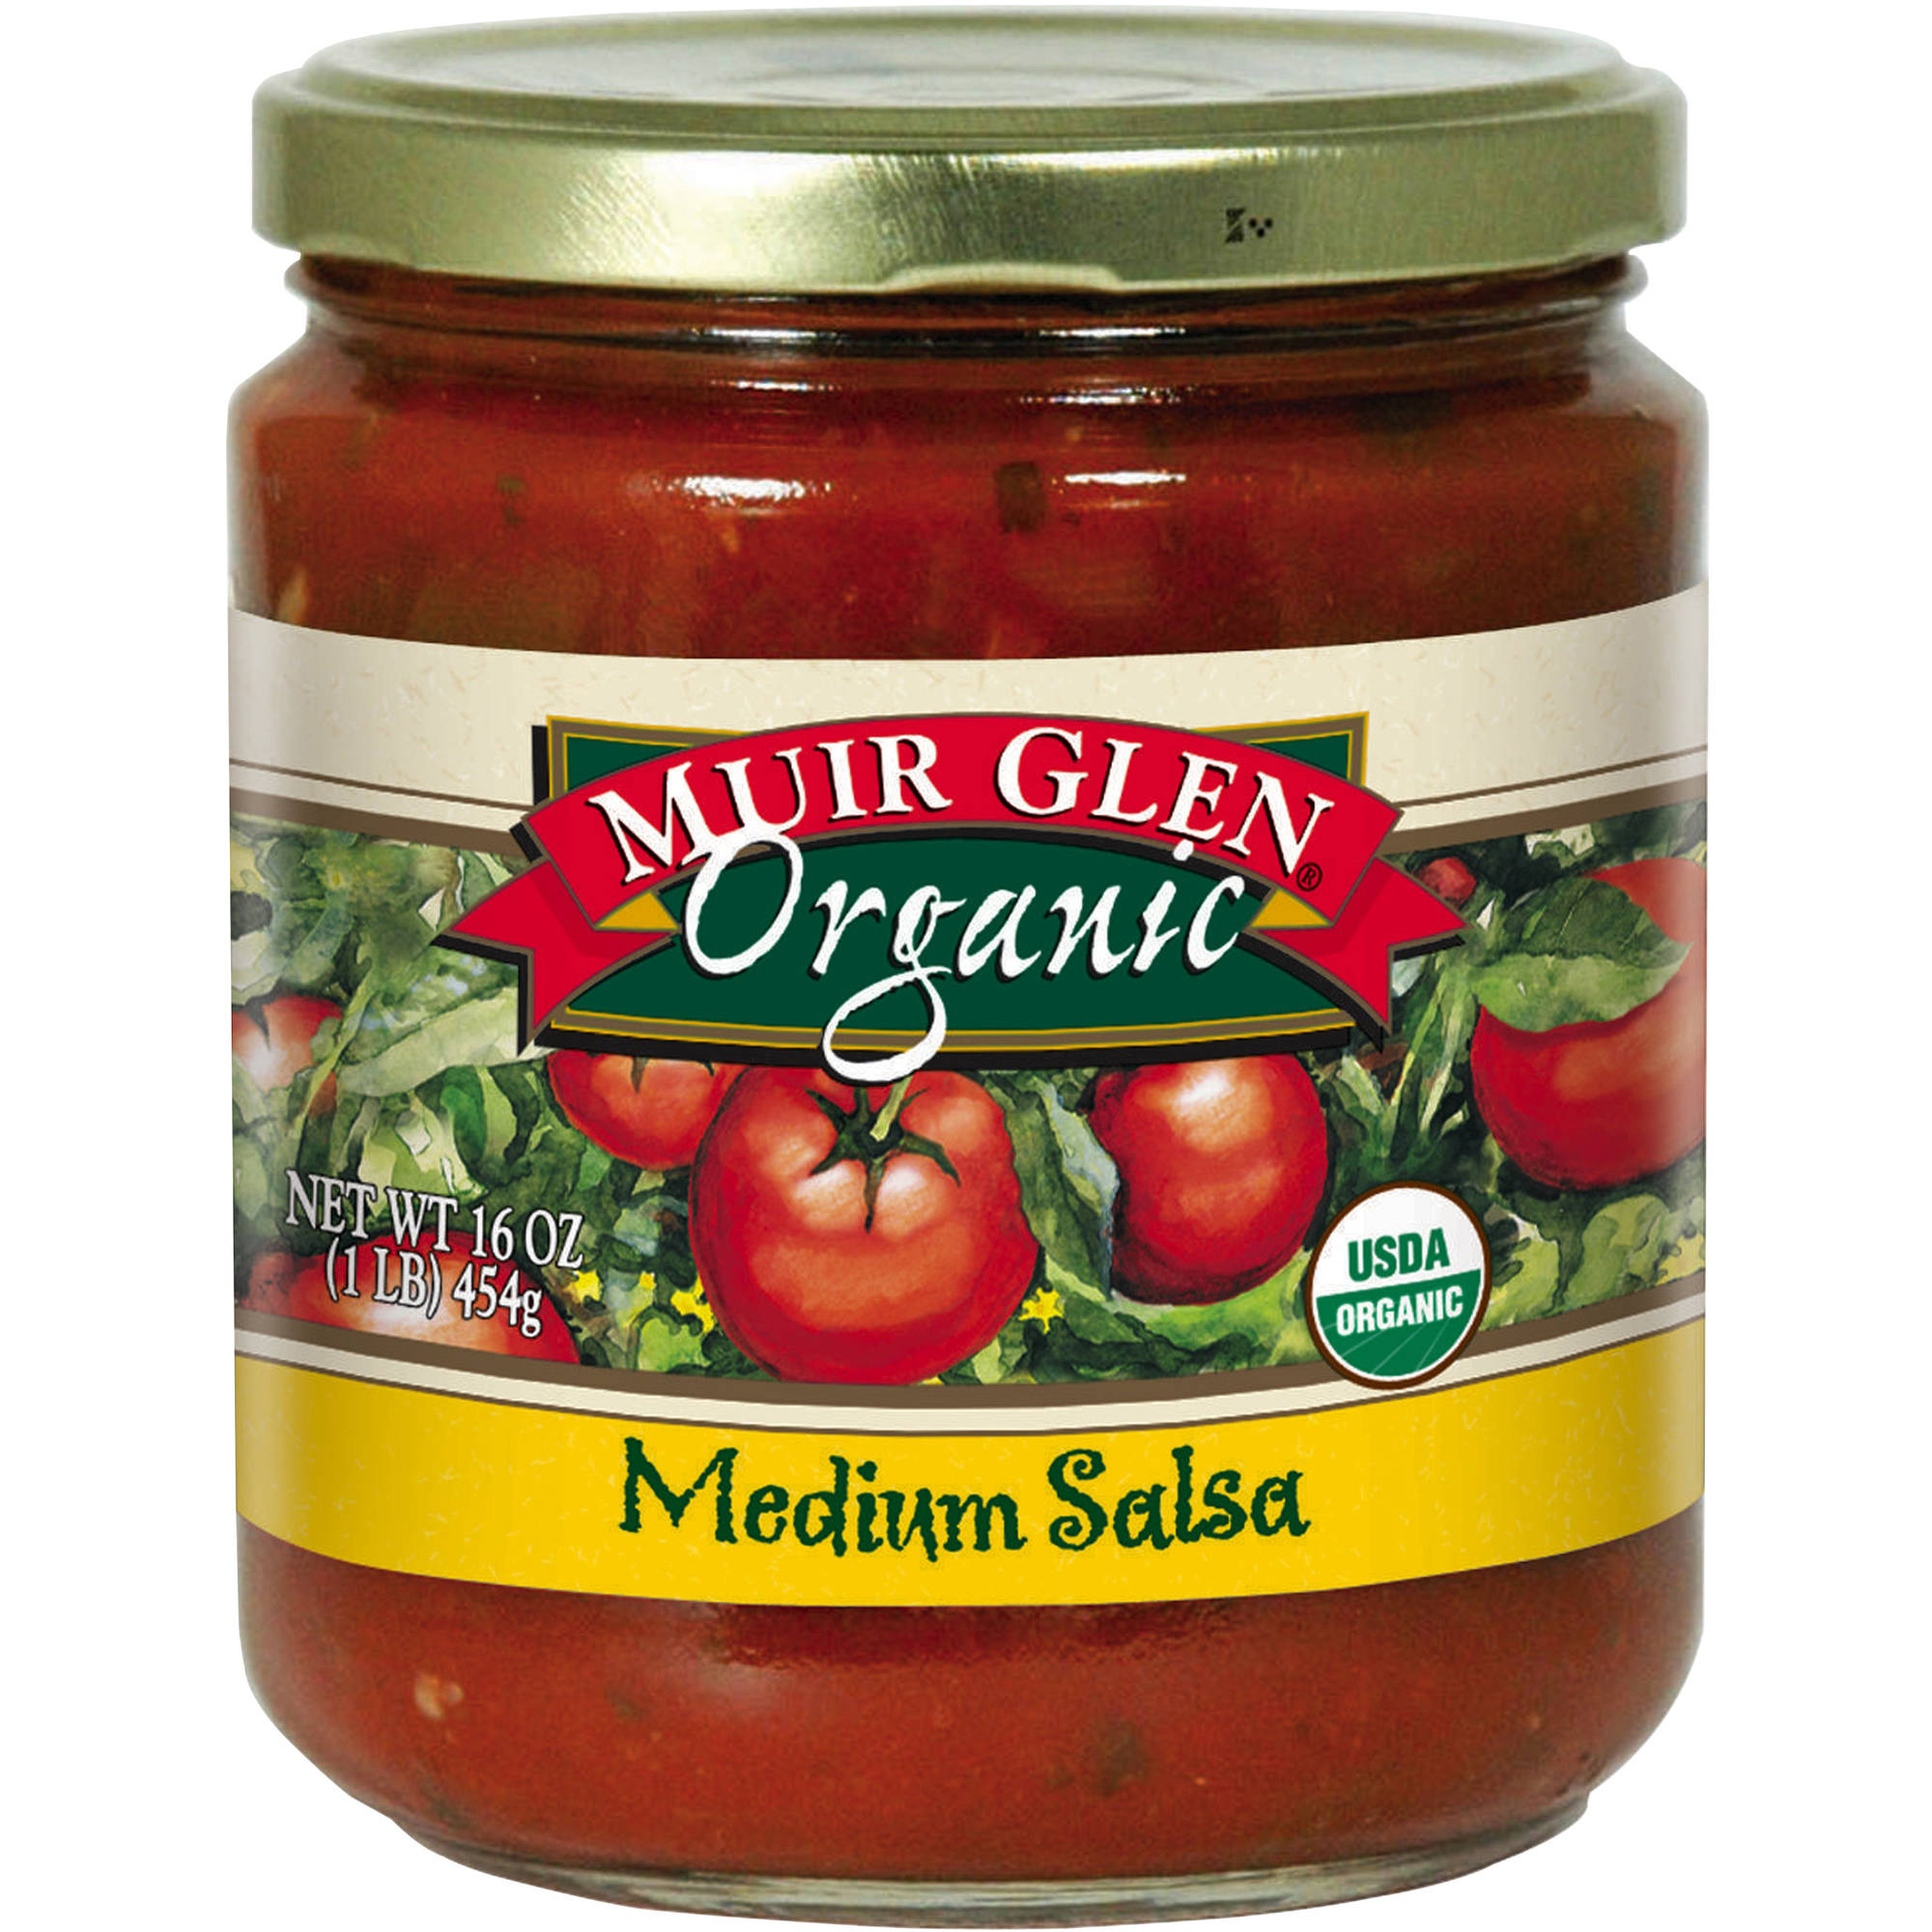 Muir Glen Organic: Medium Salsa, 16 Oz